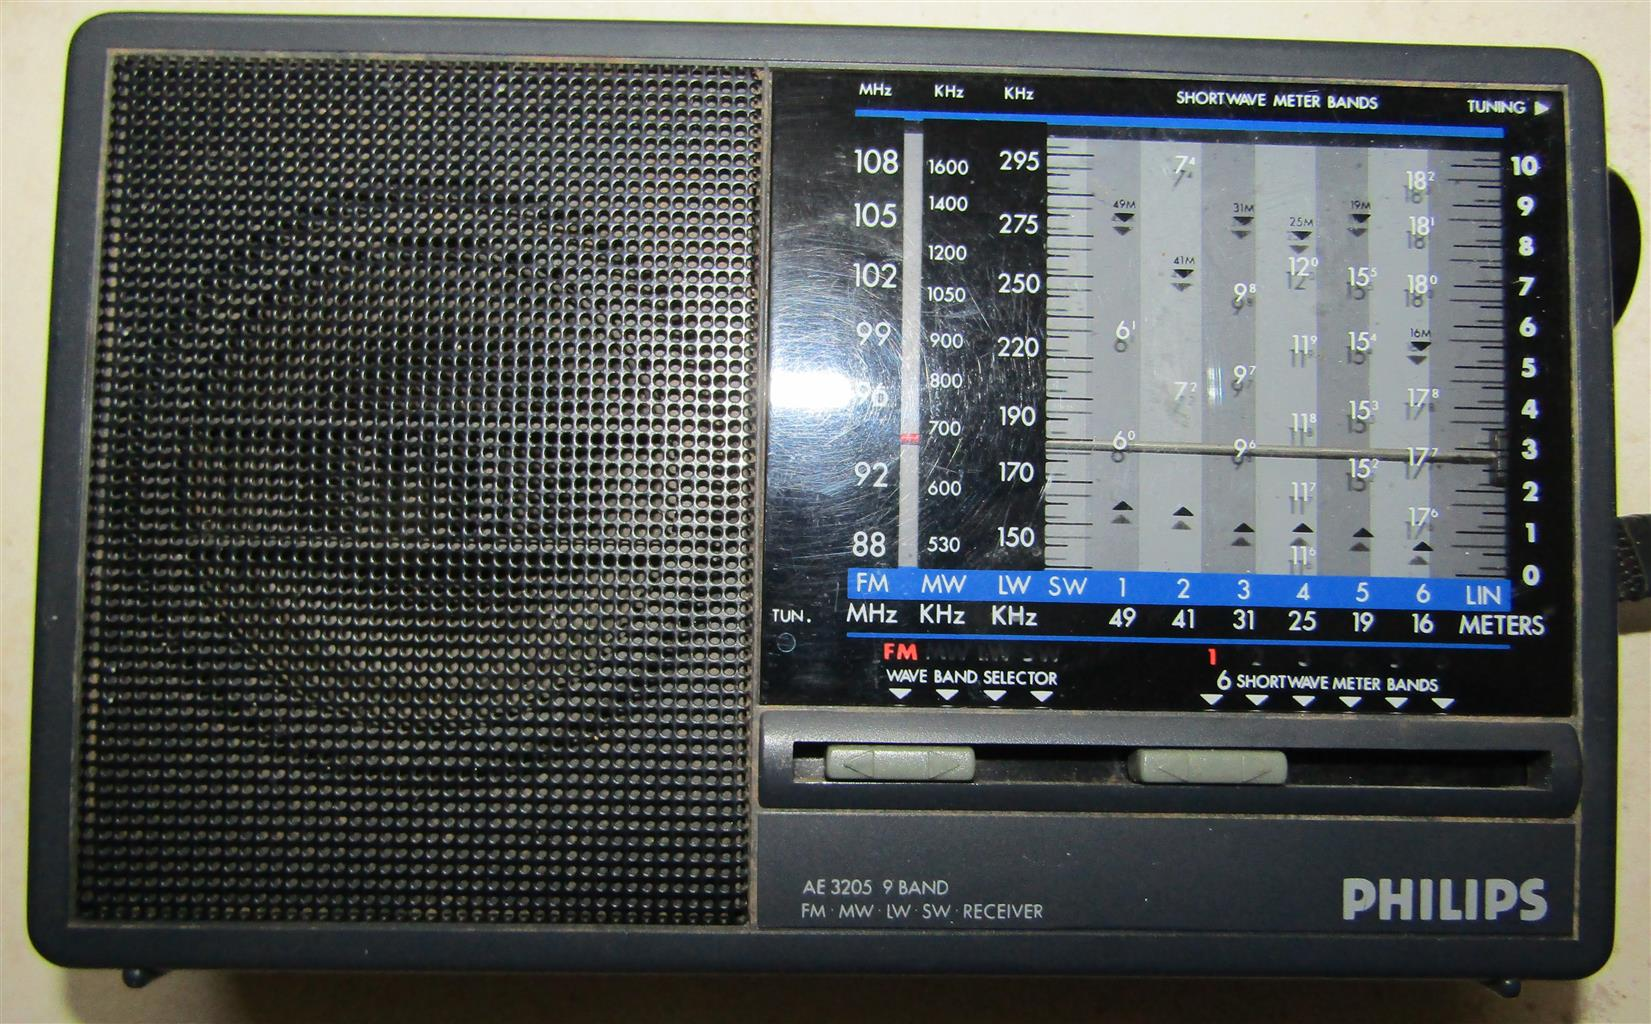 Philips AE3205 9-Band Portable Radio ***Needs Attention***